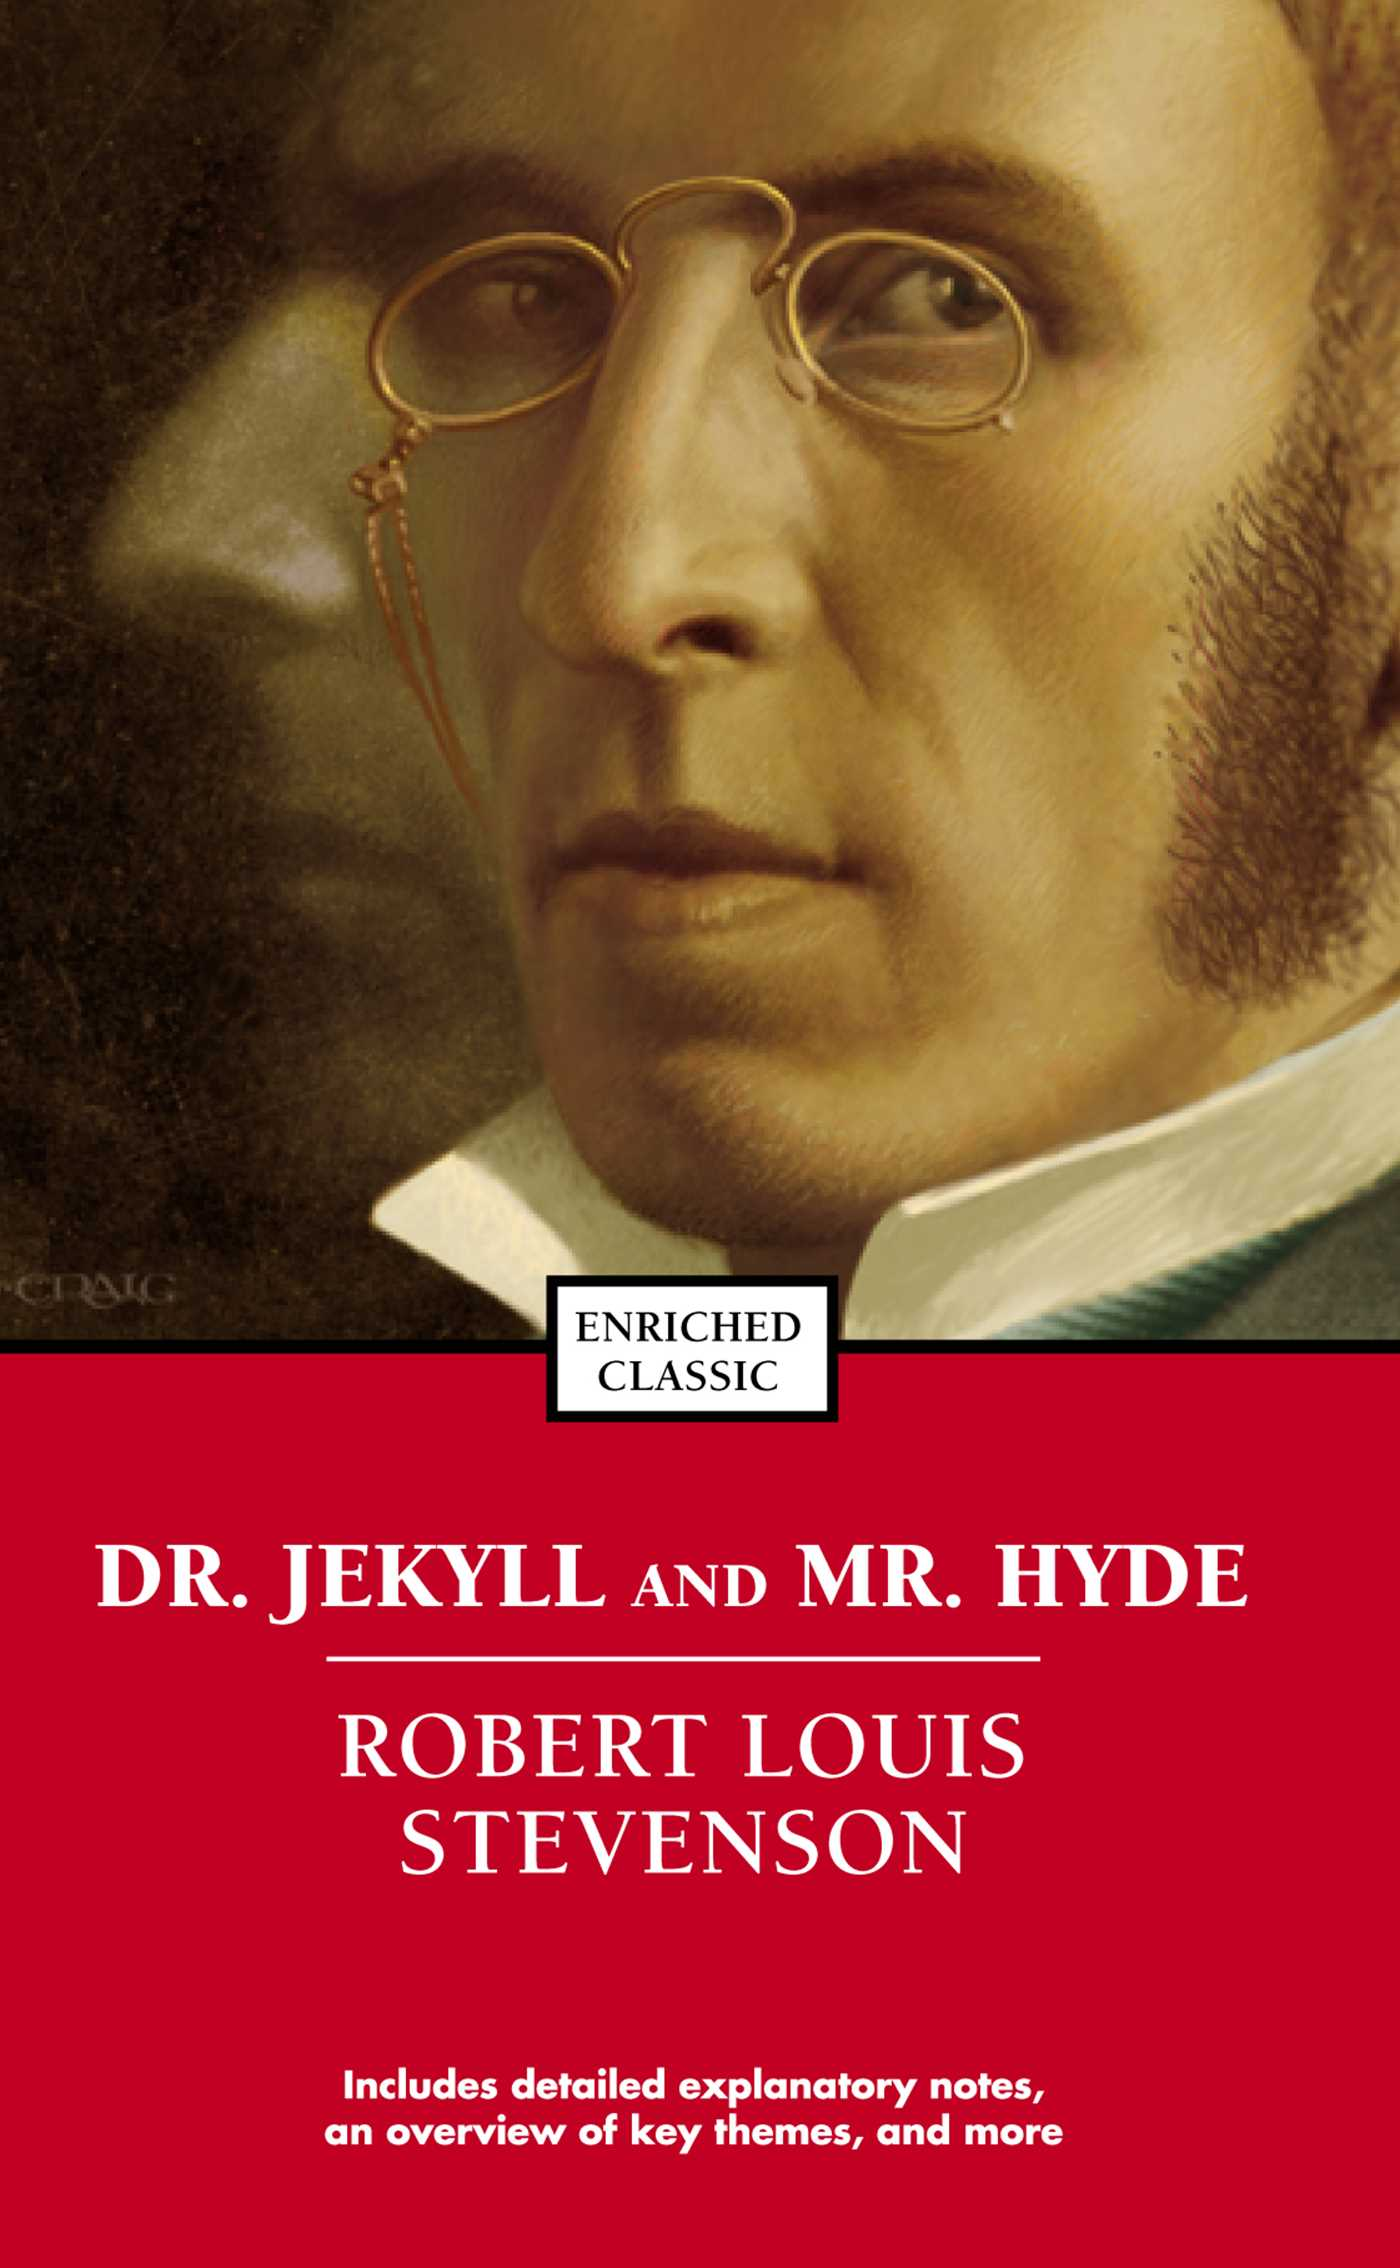 Dr jekyll and mr hyde 9781451685664 hr